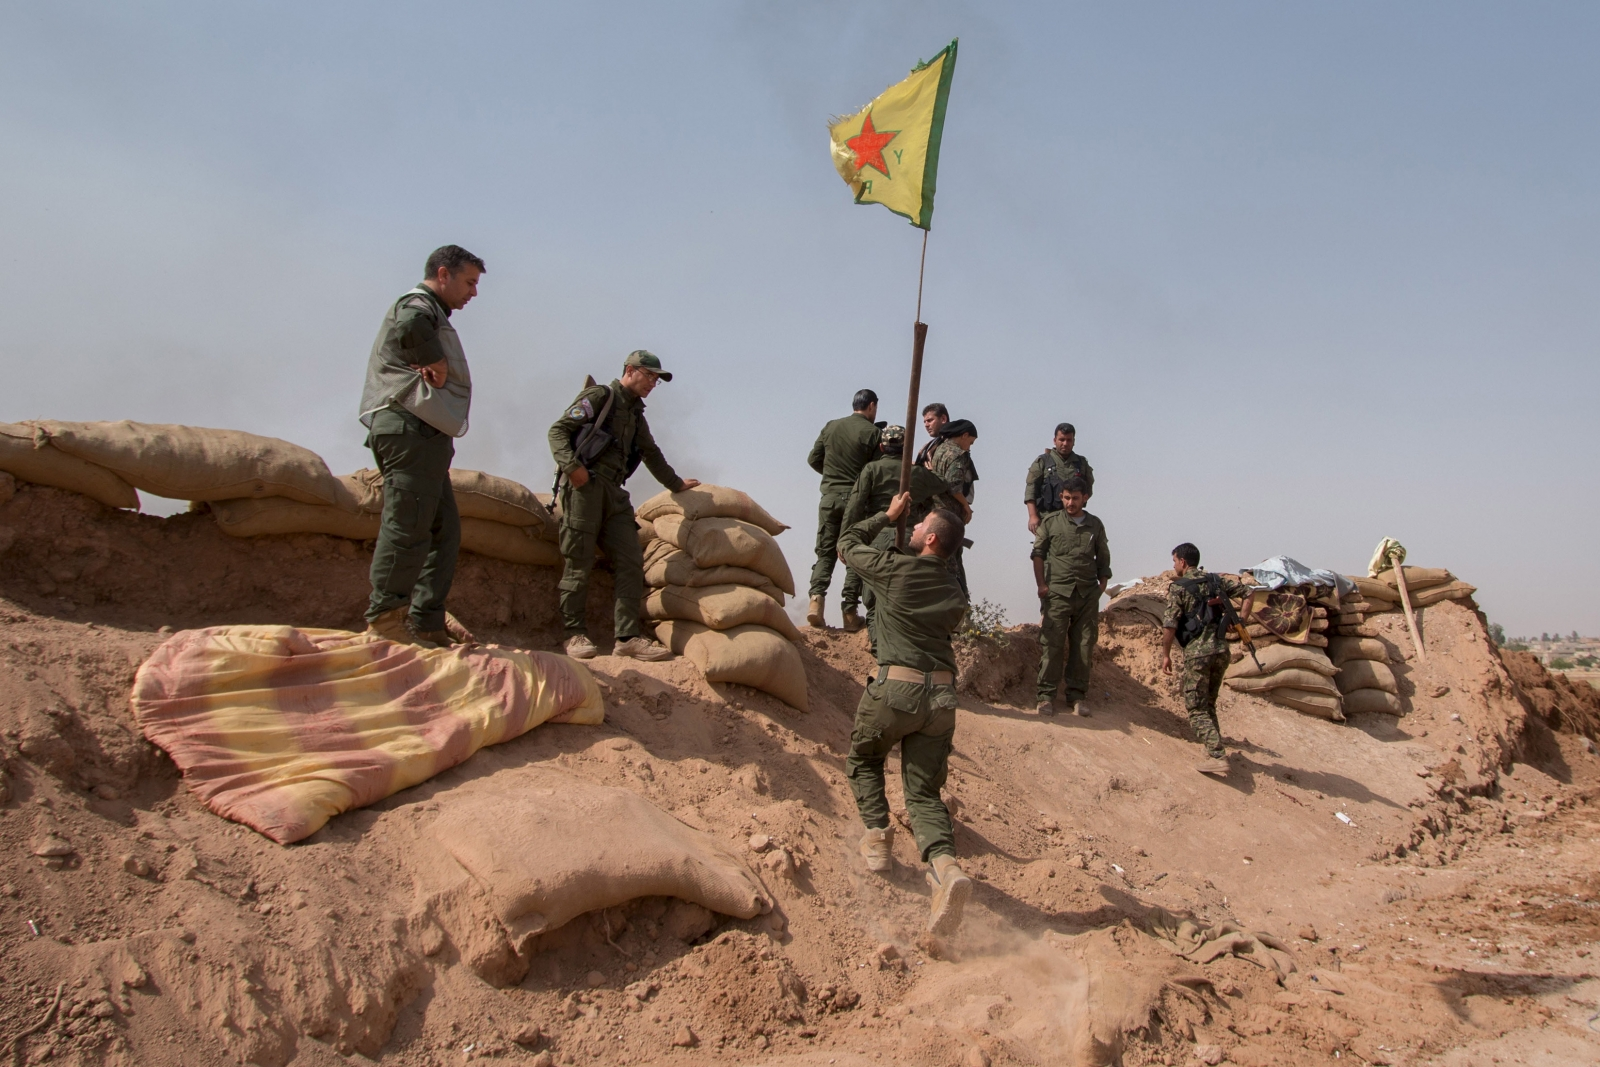 US To Provide Antitank Weapons To Kurdish Forces In Syria - WSJ